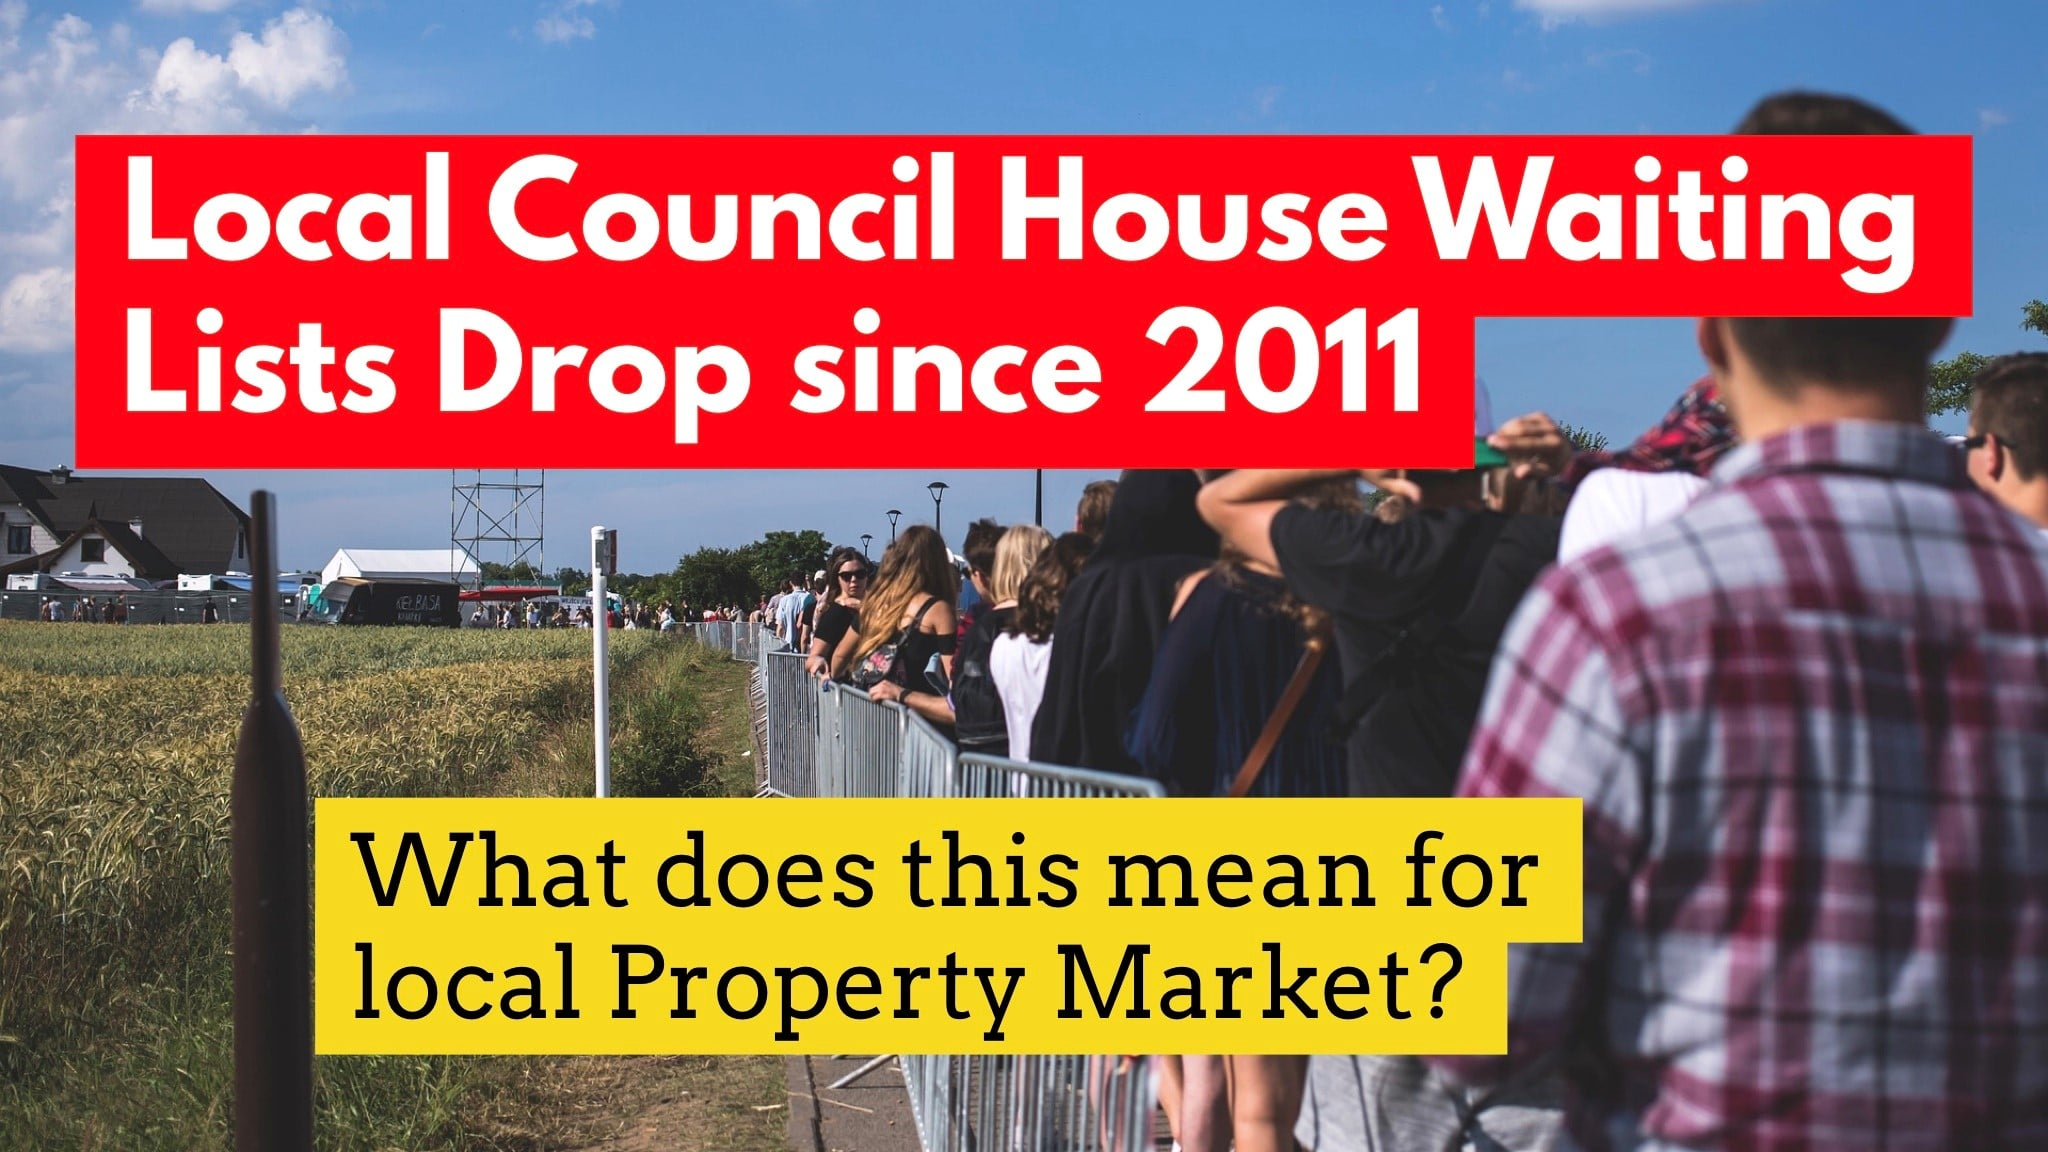 Canterbury Council House Waiting List Drops by 34.2% since 2011